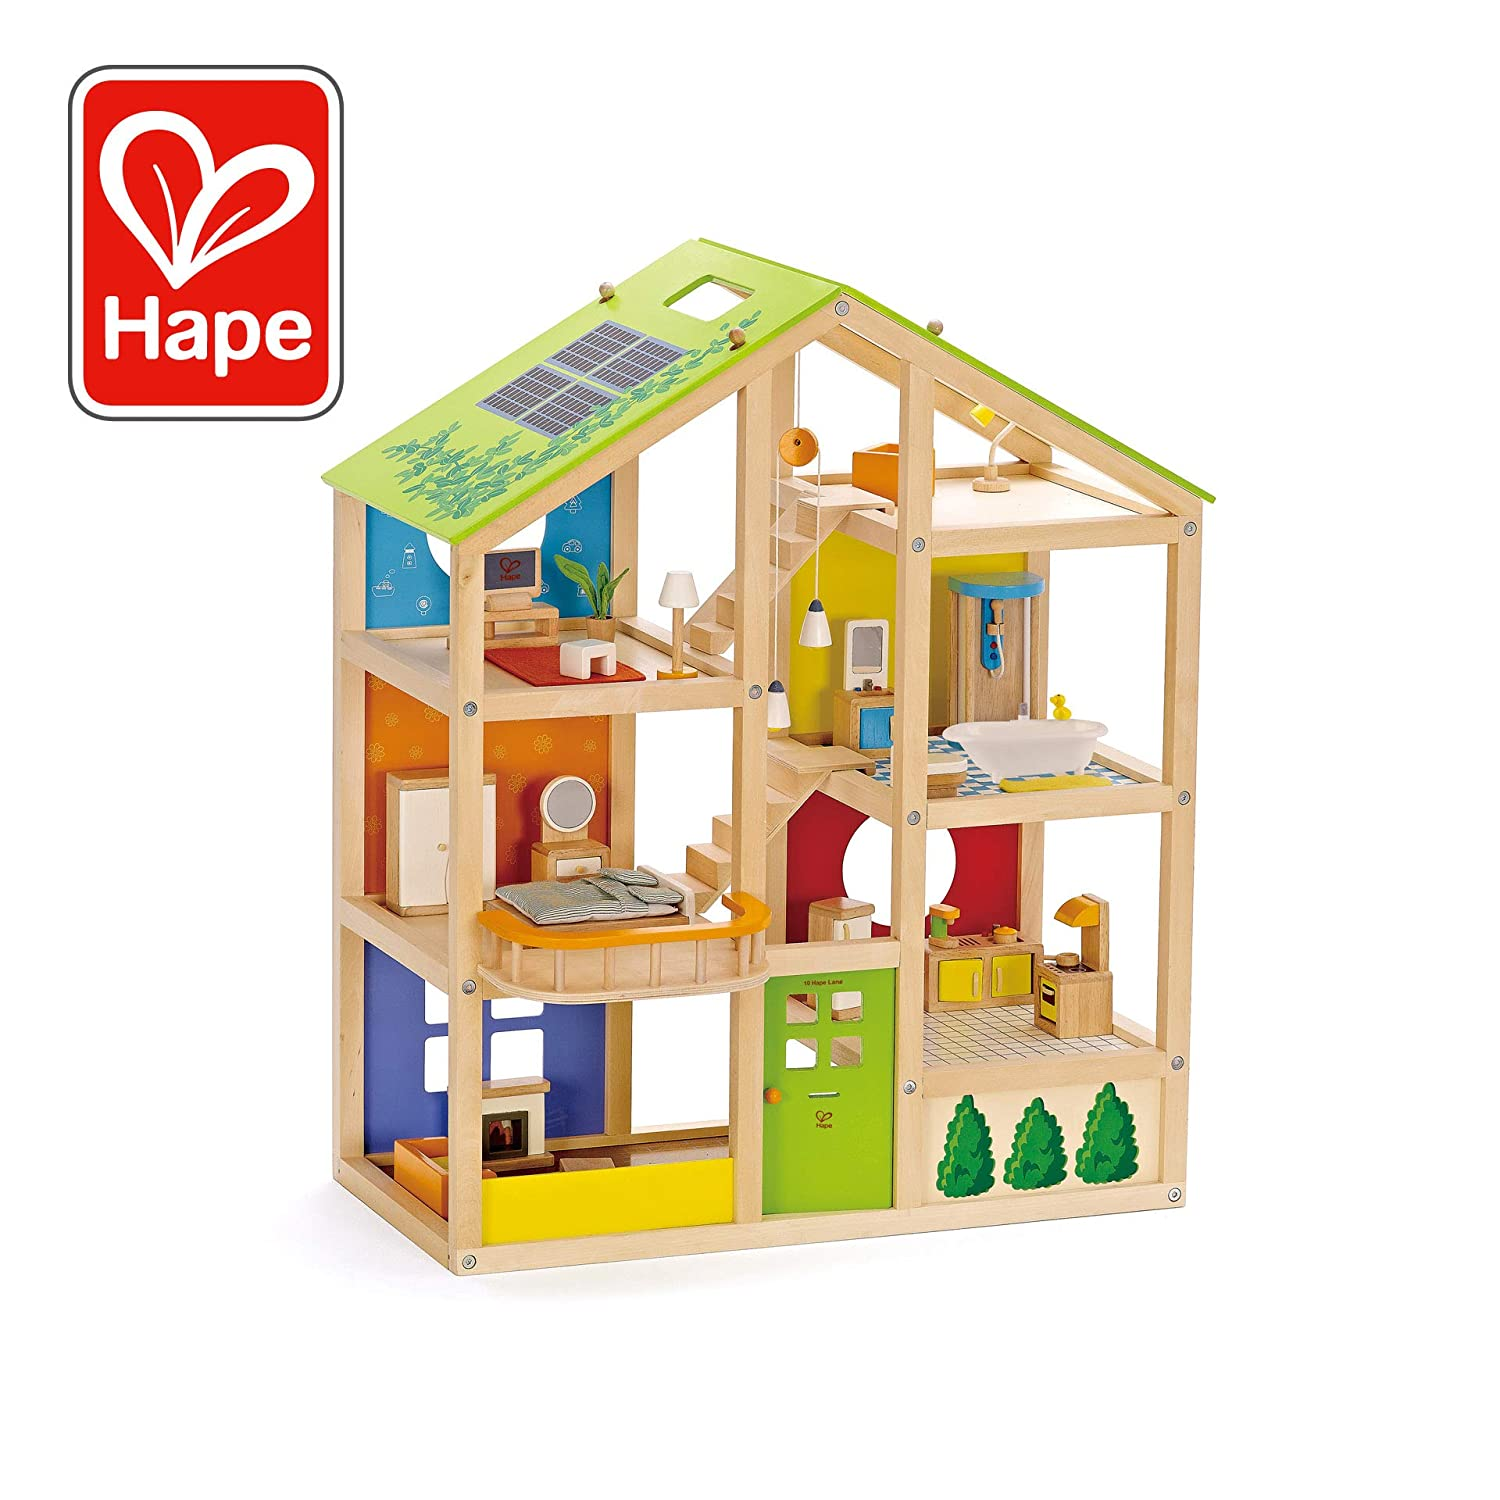 All Seasons Kids Wooden Dollhouse By Hape Award Winning 3 Story Dolls House Toy With Furniture Accessories Movable Stairs And Reversible Season